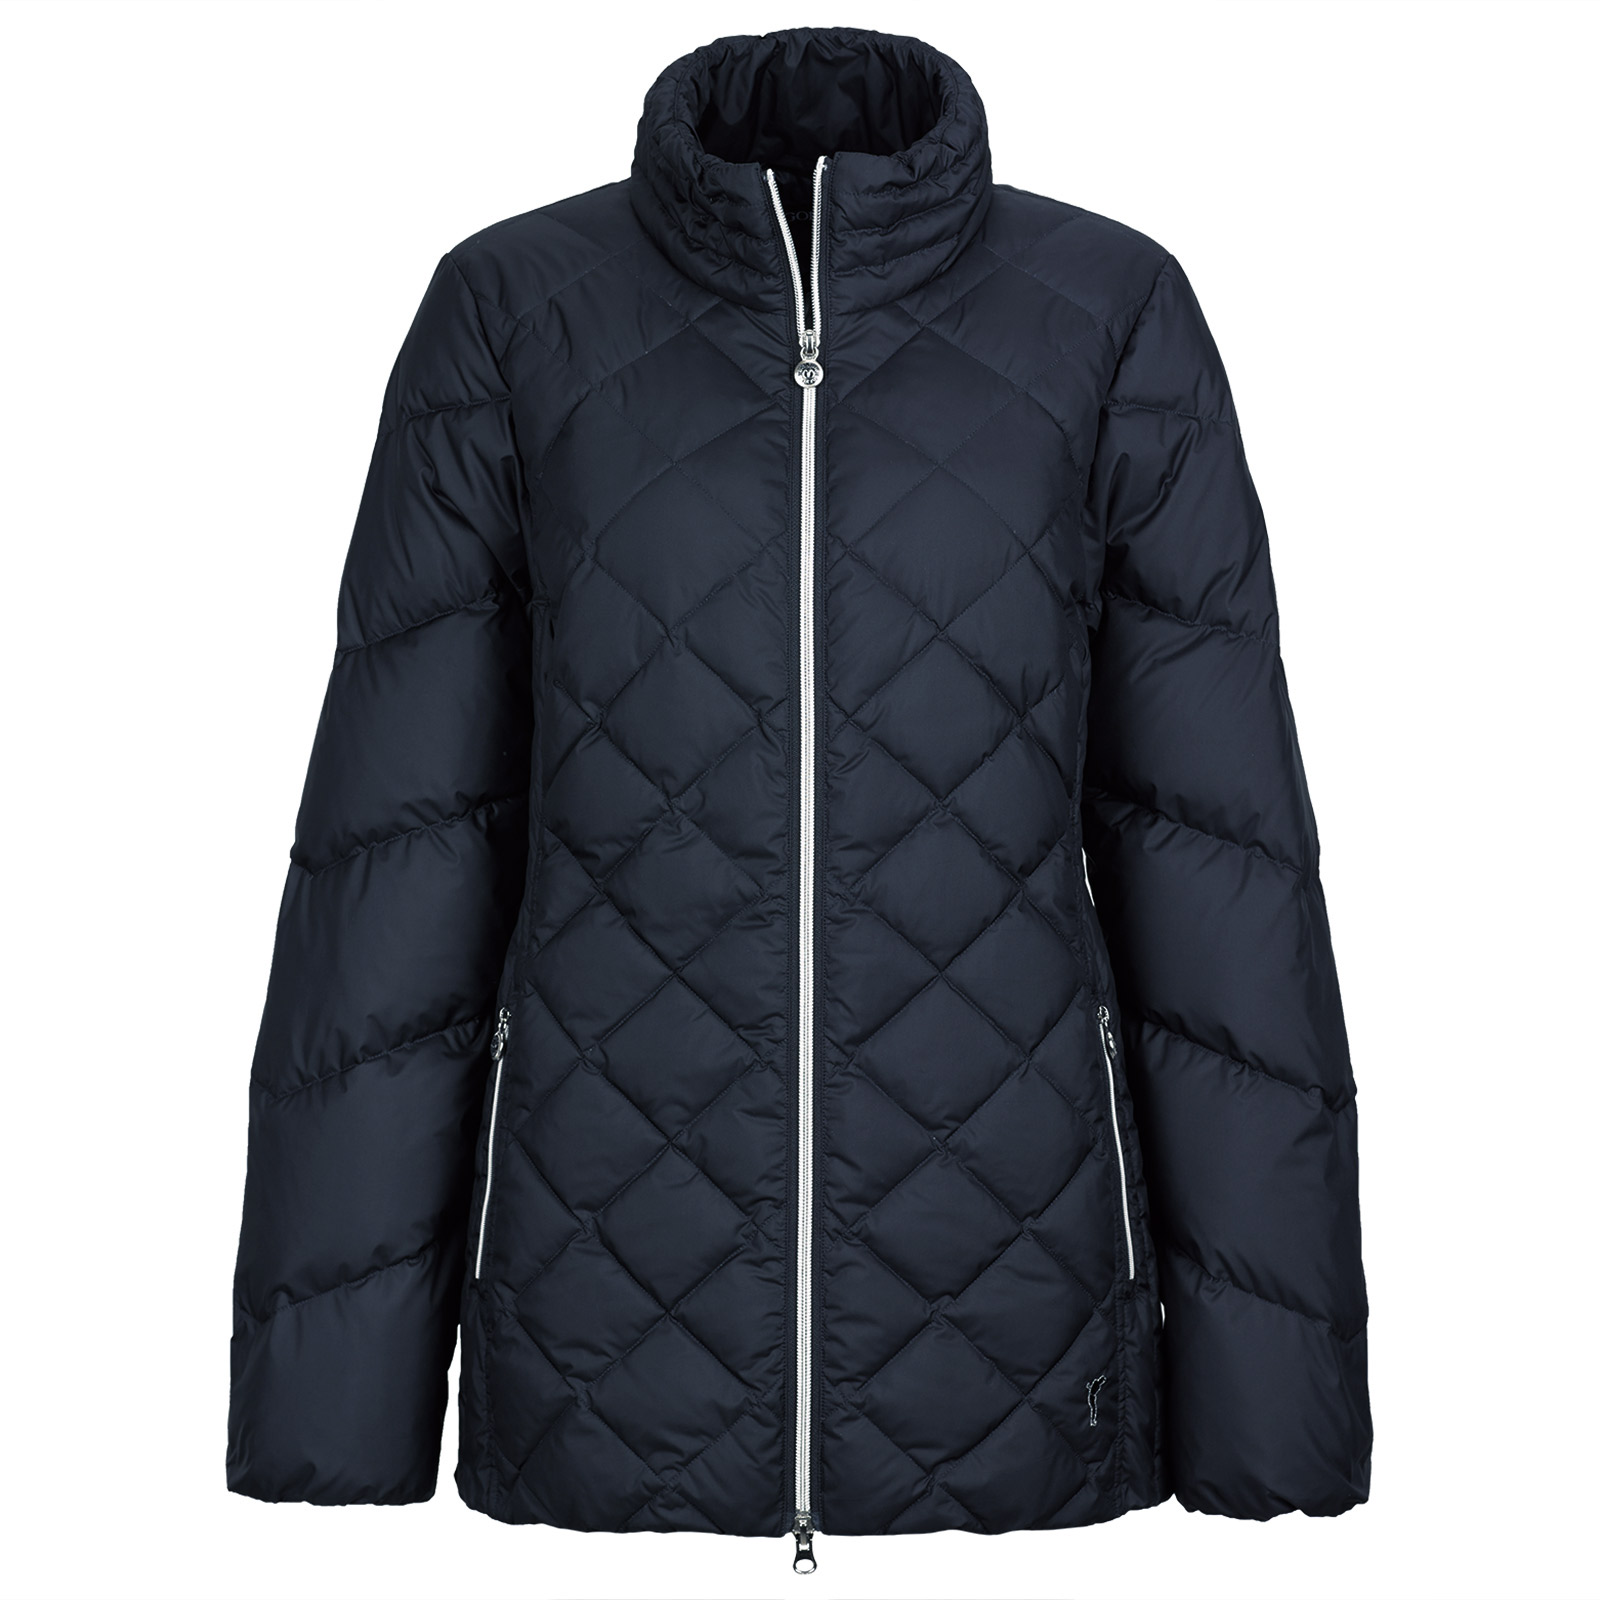 Ladies' padded jacket with down filling in mid-length fit